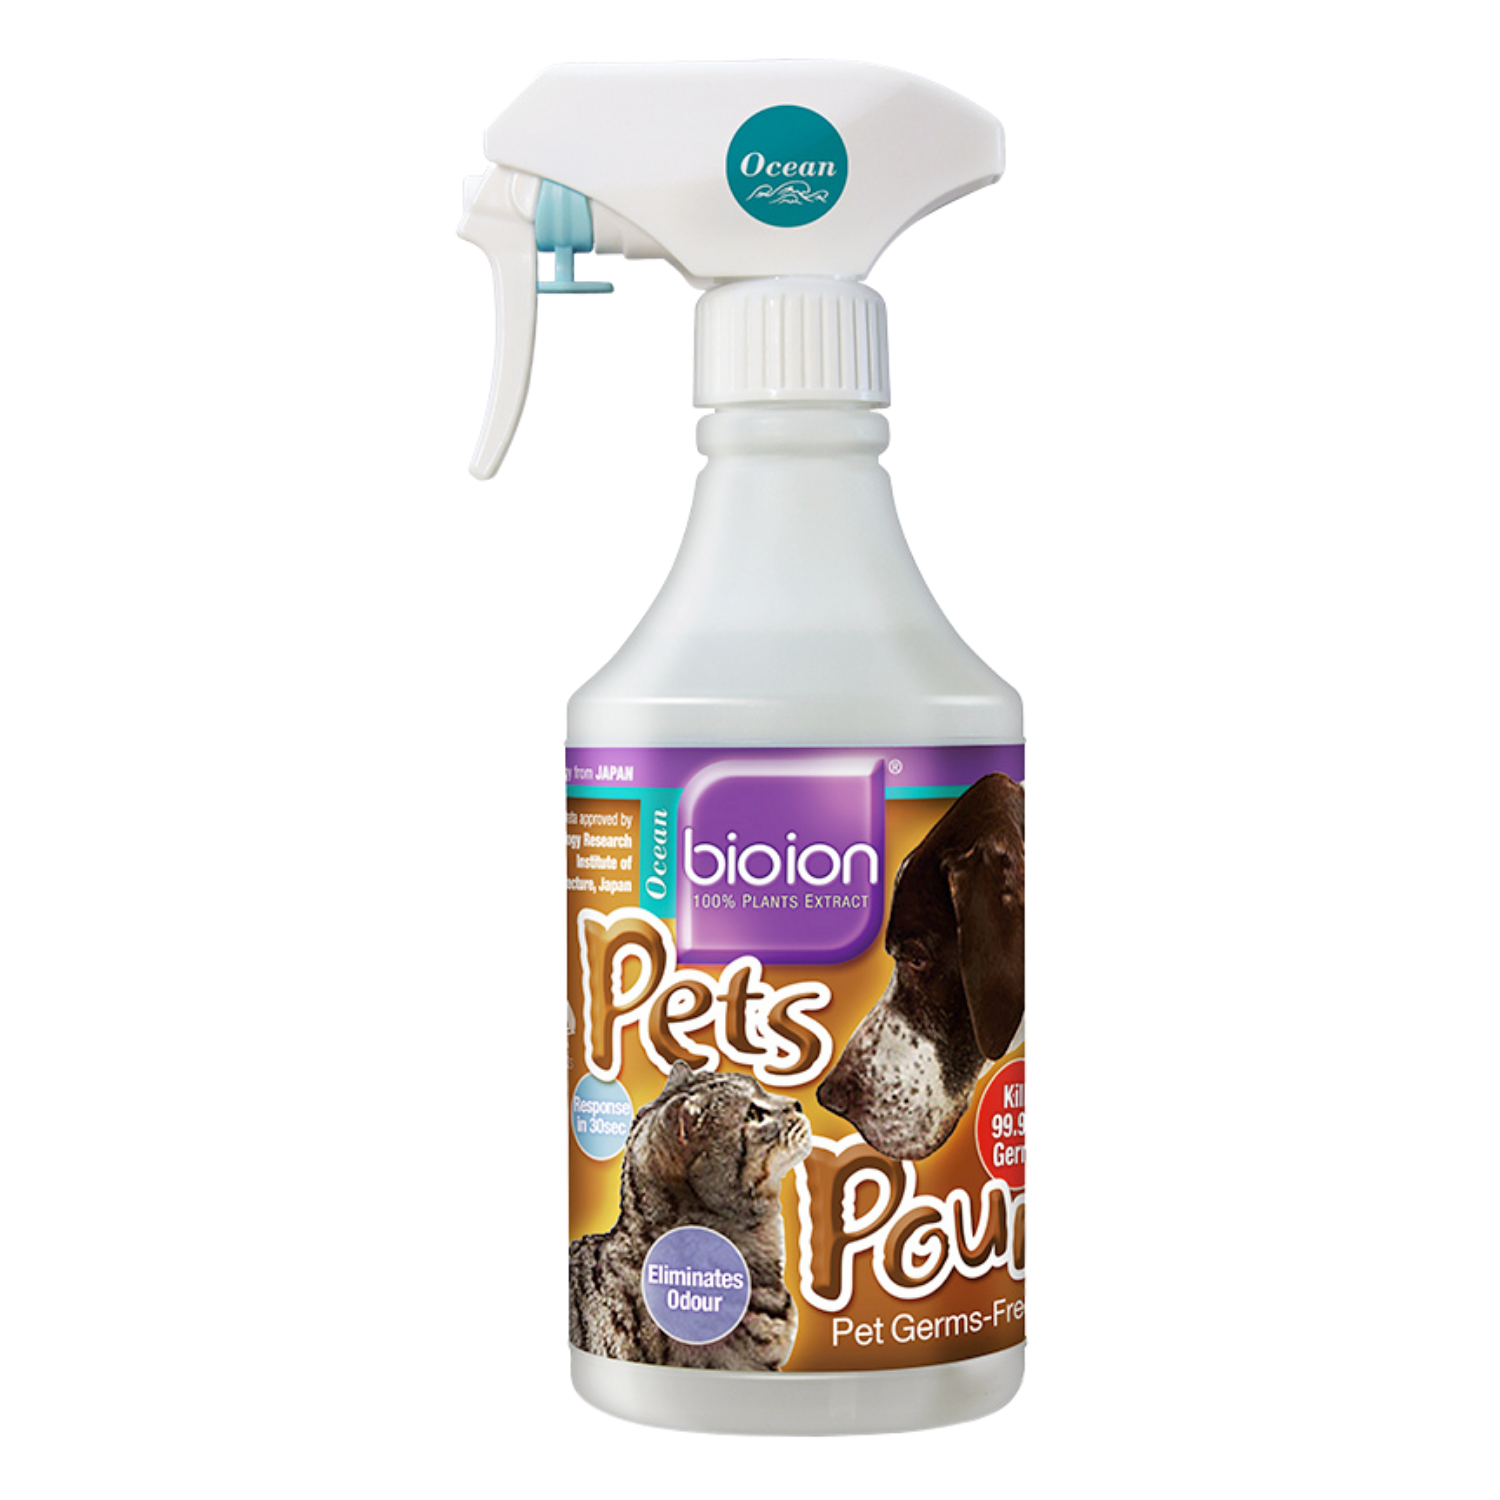 Bioion Pets Pounce Sanitizer - Ocean - 15ml / 60ml / 500ml